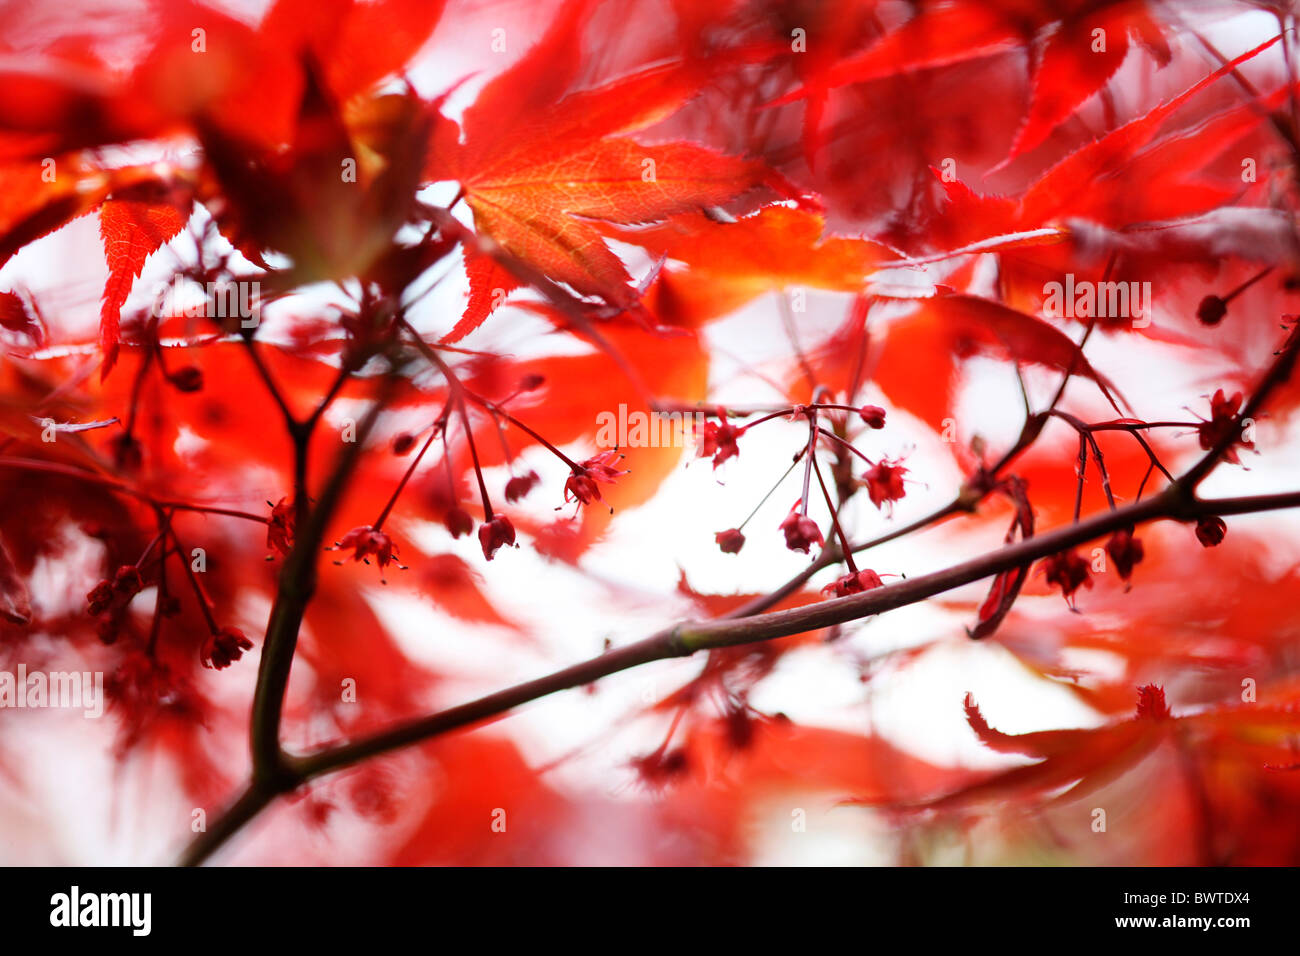 atmospheric red maple tree Jane-Ann Butler Photography JABP909 Stock Photo